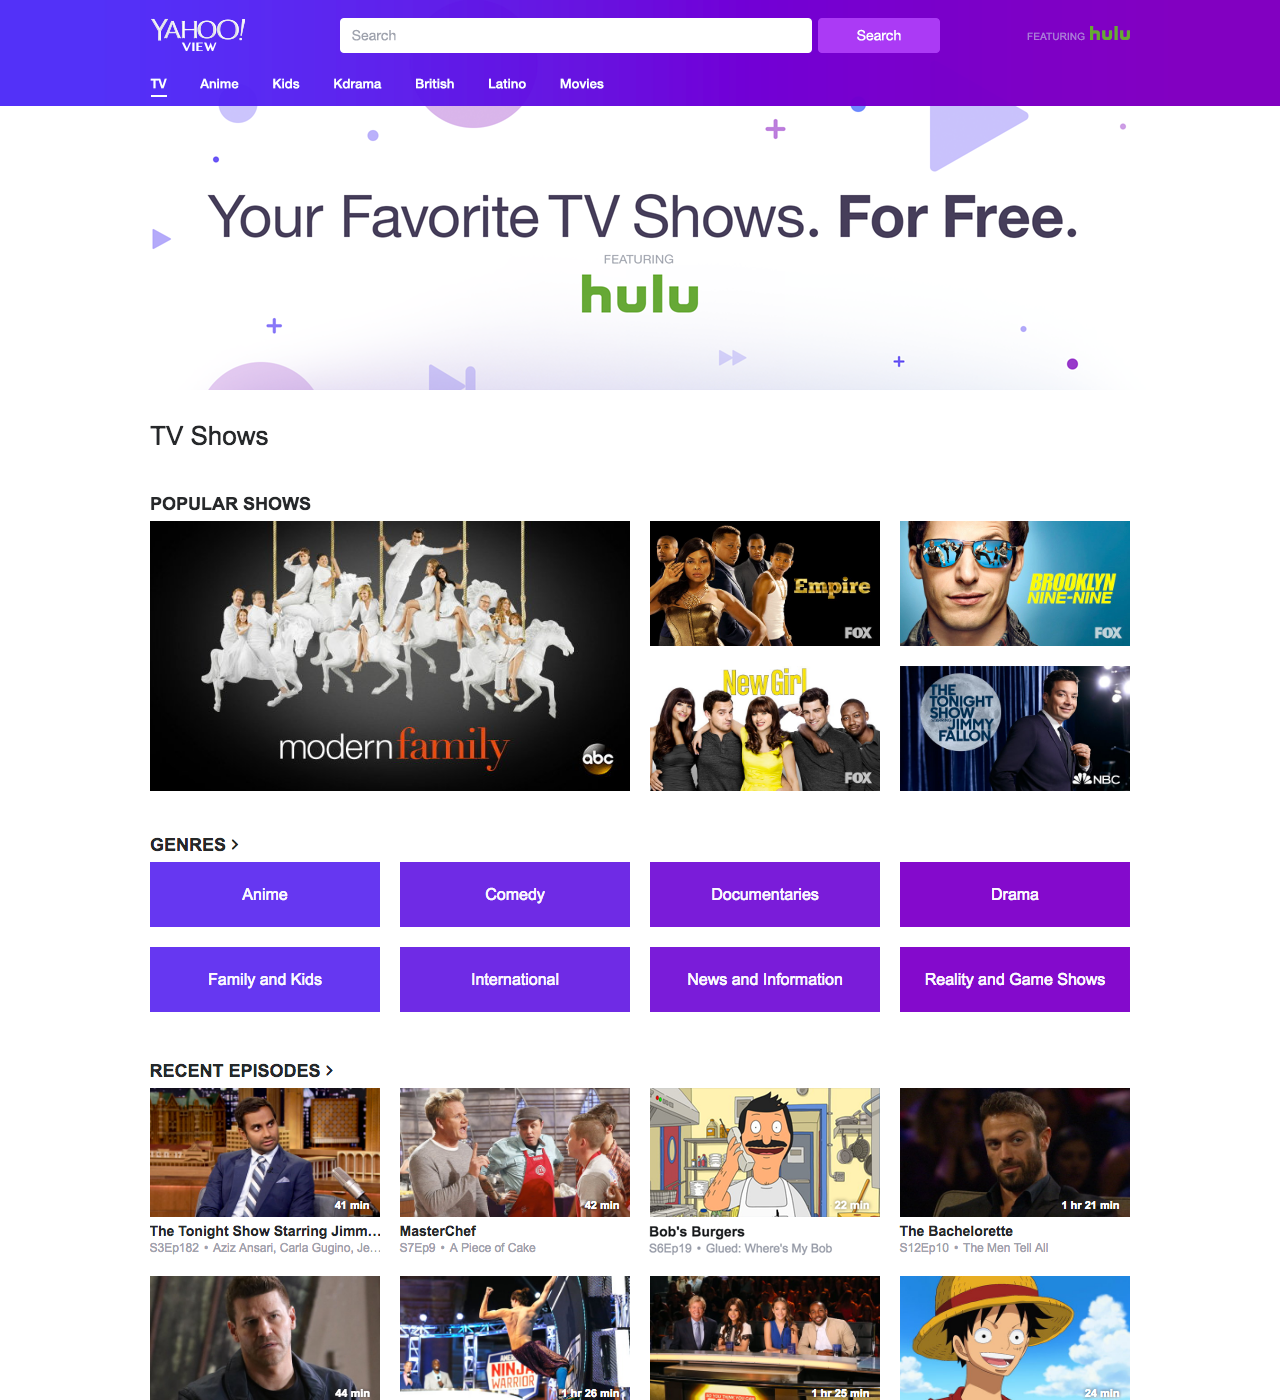 Yahoo View lets you search by genre and any shows on Hulu.